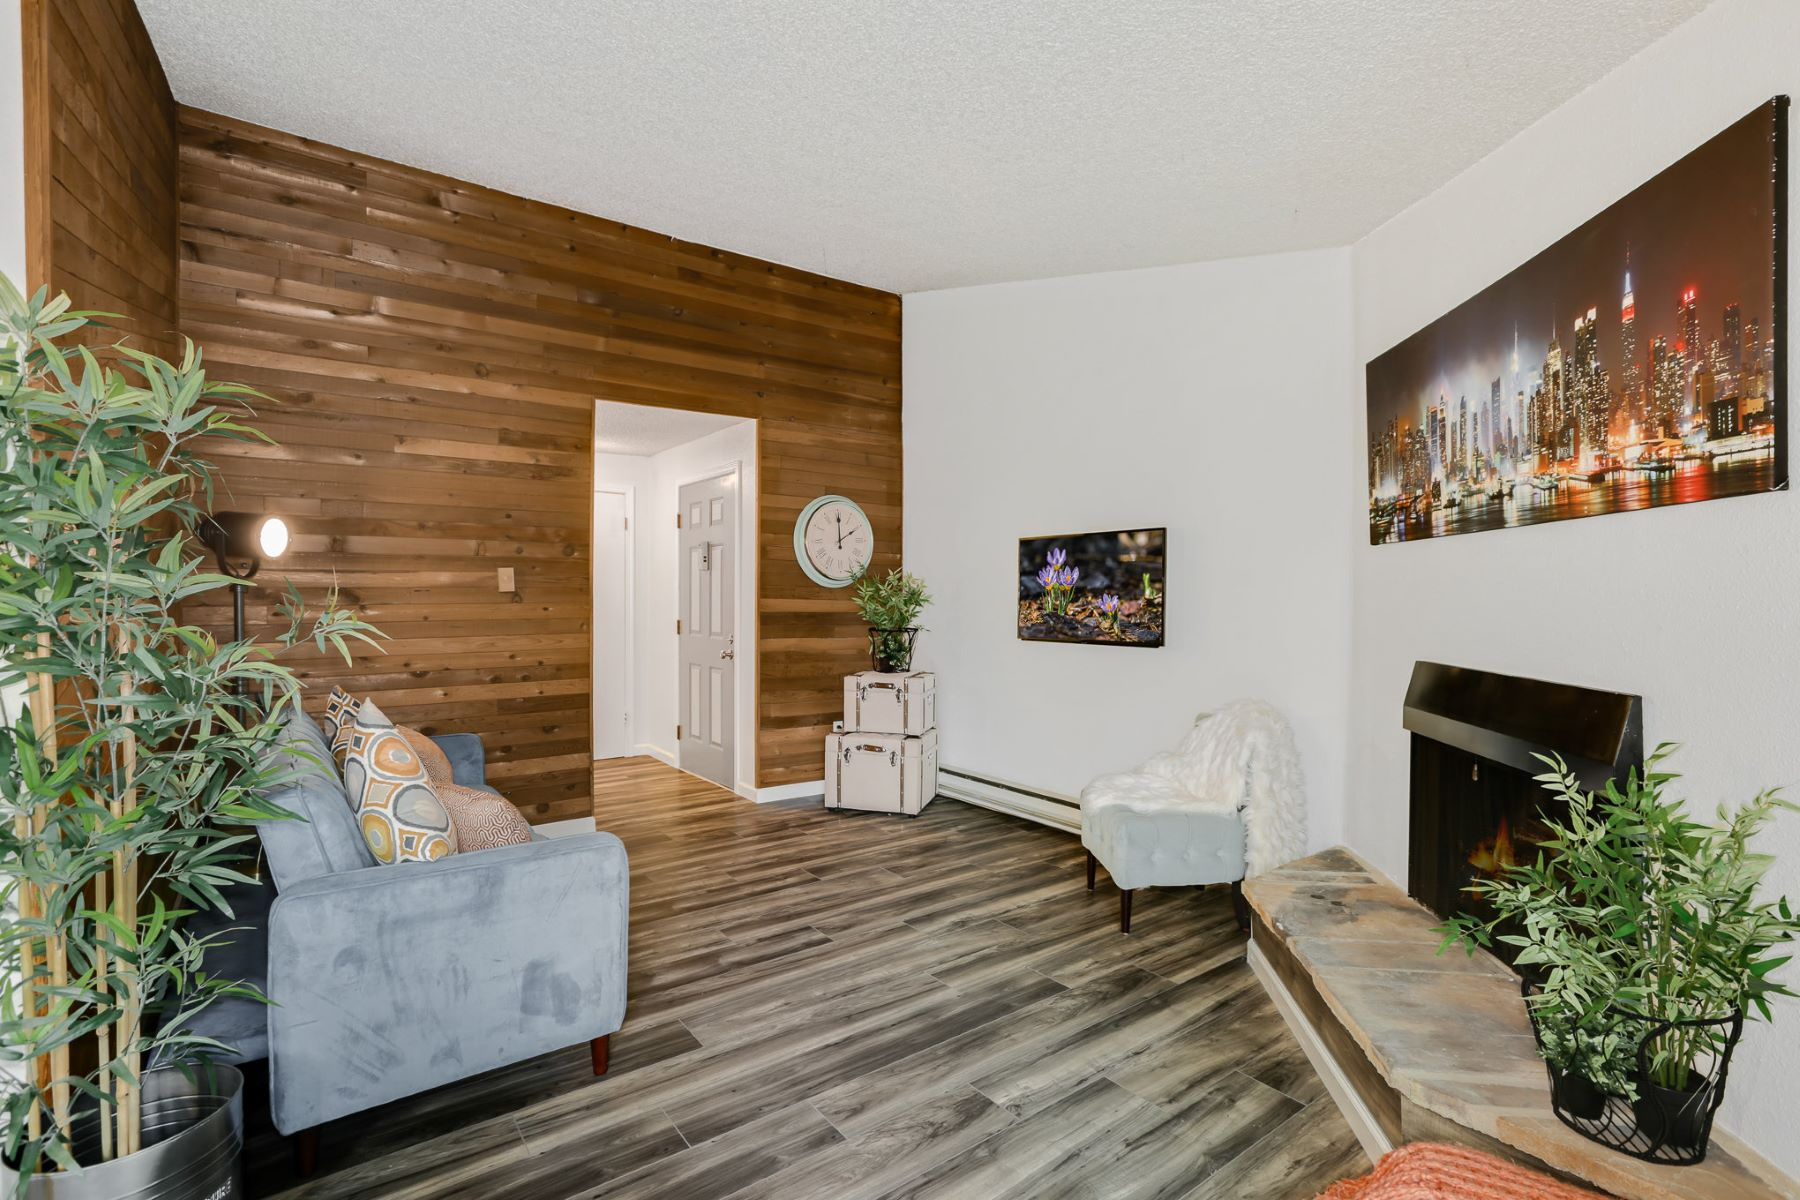 Condominiums for Sale at Lotus Listing 1840 Central Place S, Unit B18 Kent, Washington 98030 United States